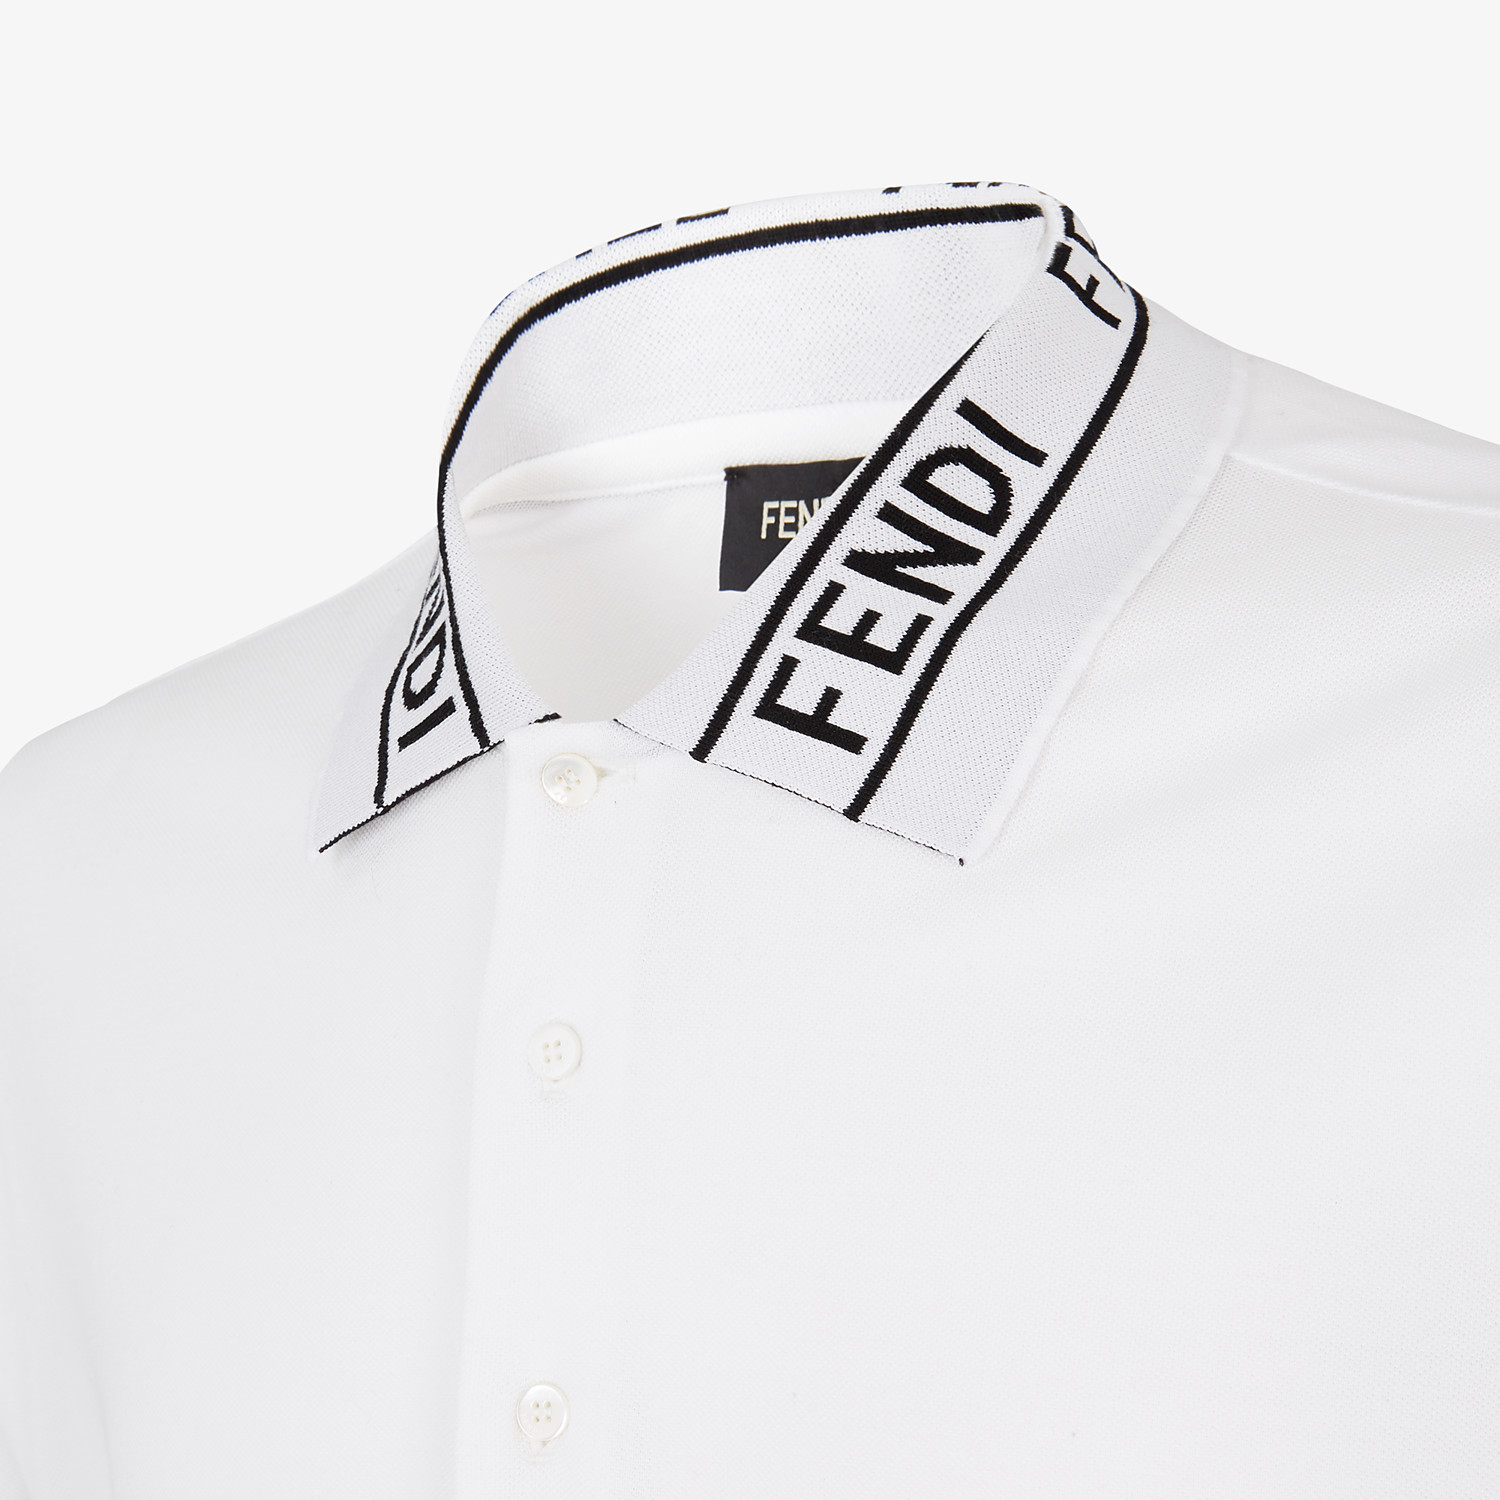 FENDI POLO SHIRT - White piqué sweater - view 3 detail